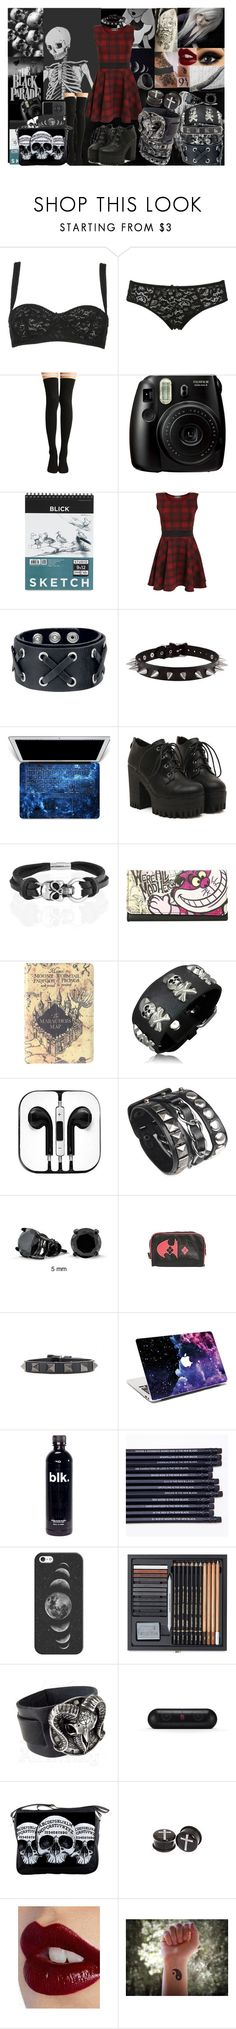 """Untitled #96"" by always-singing ❤ liked on Polyvore featuring Dolce & Gabbana Underwear, Bling Jewelry, Disney, Valentino, Casetify, Beats by Dr. Dre, Charlotte Tilbury and Sevan Biçakçi"